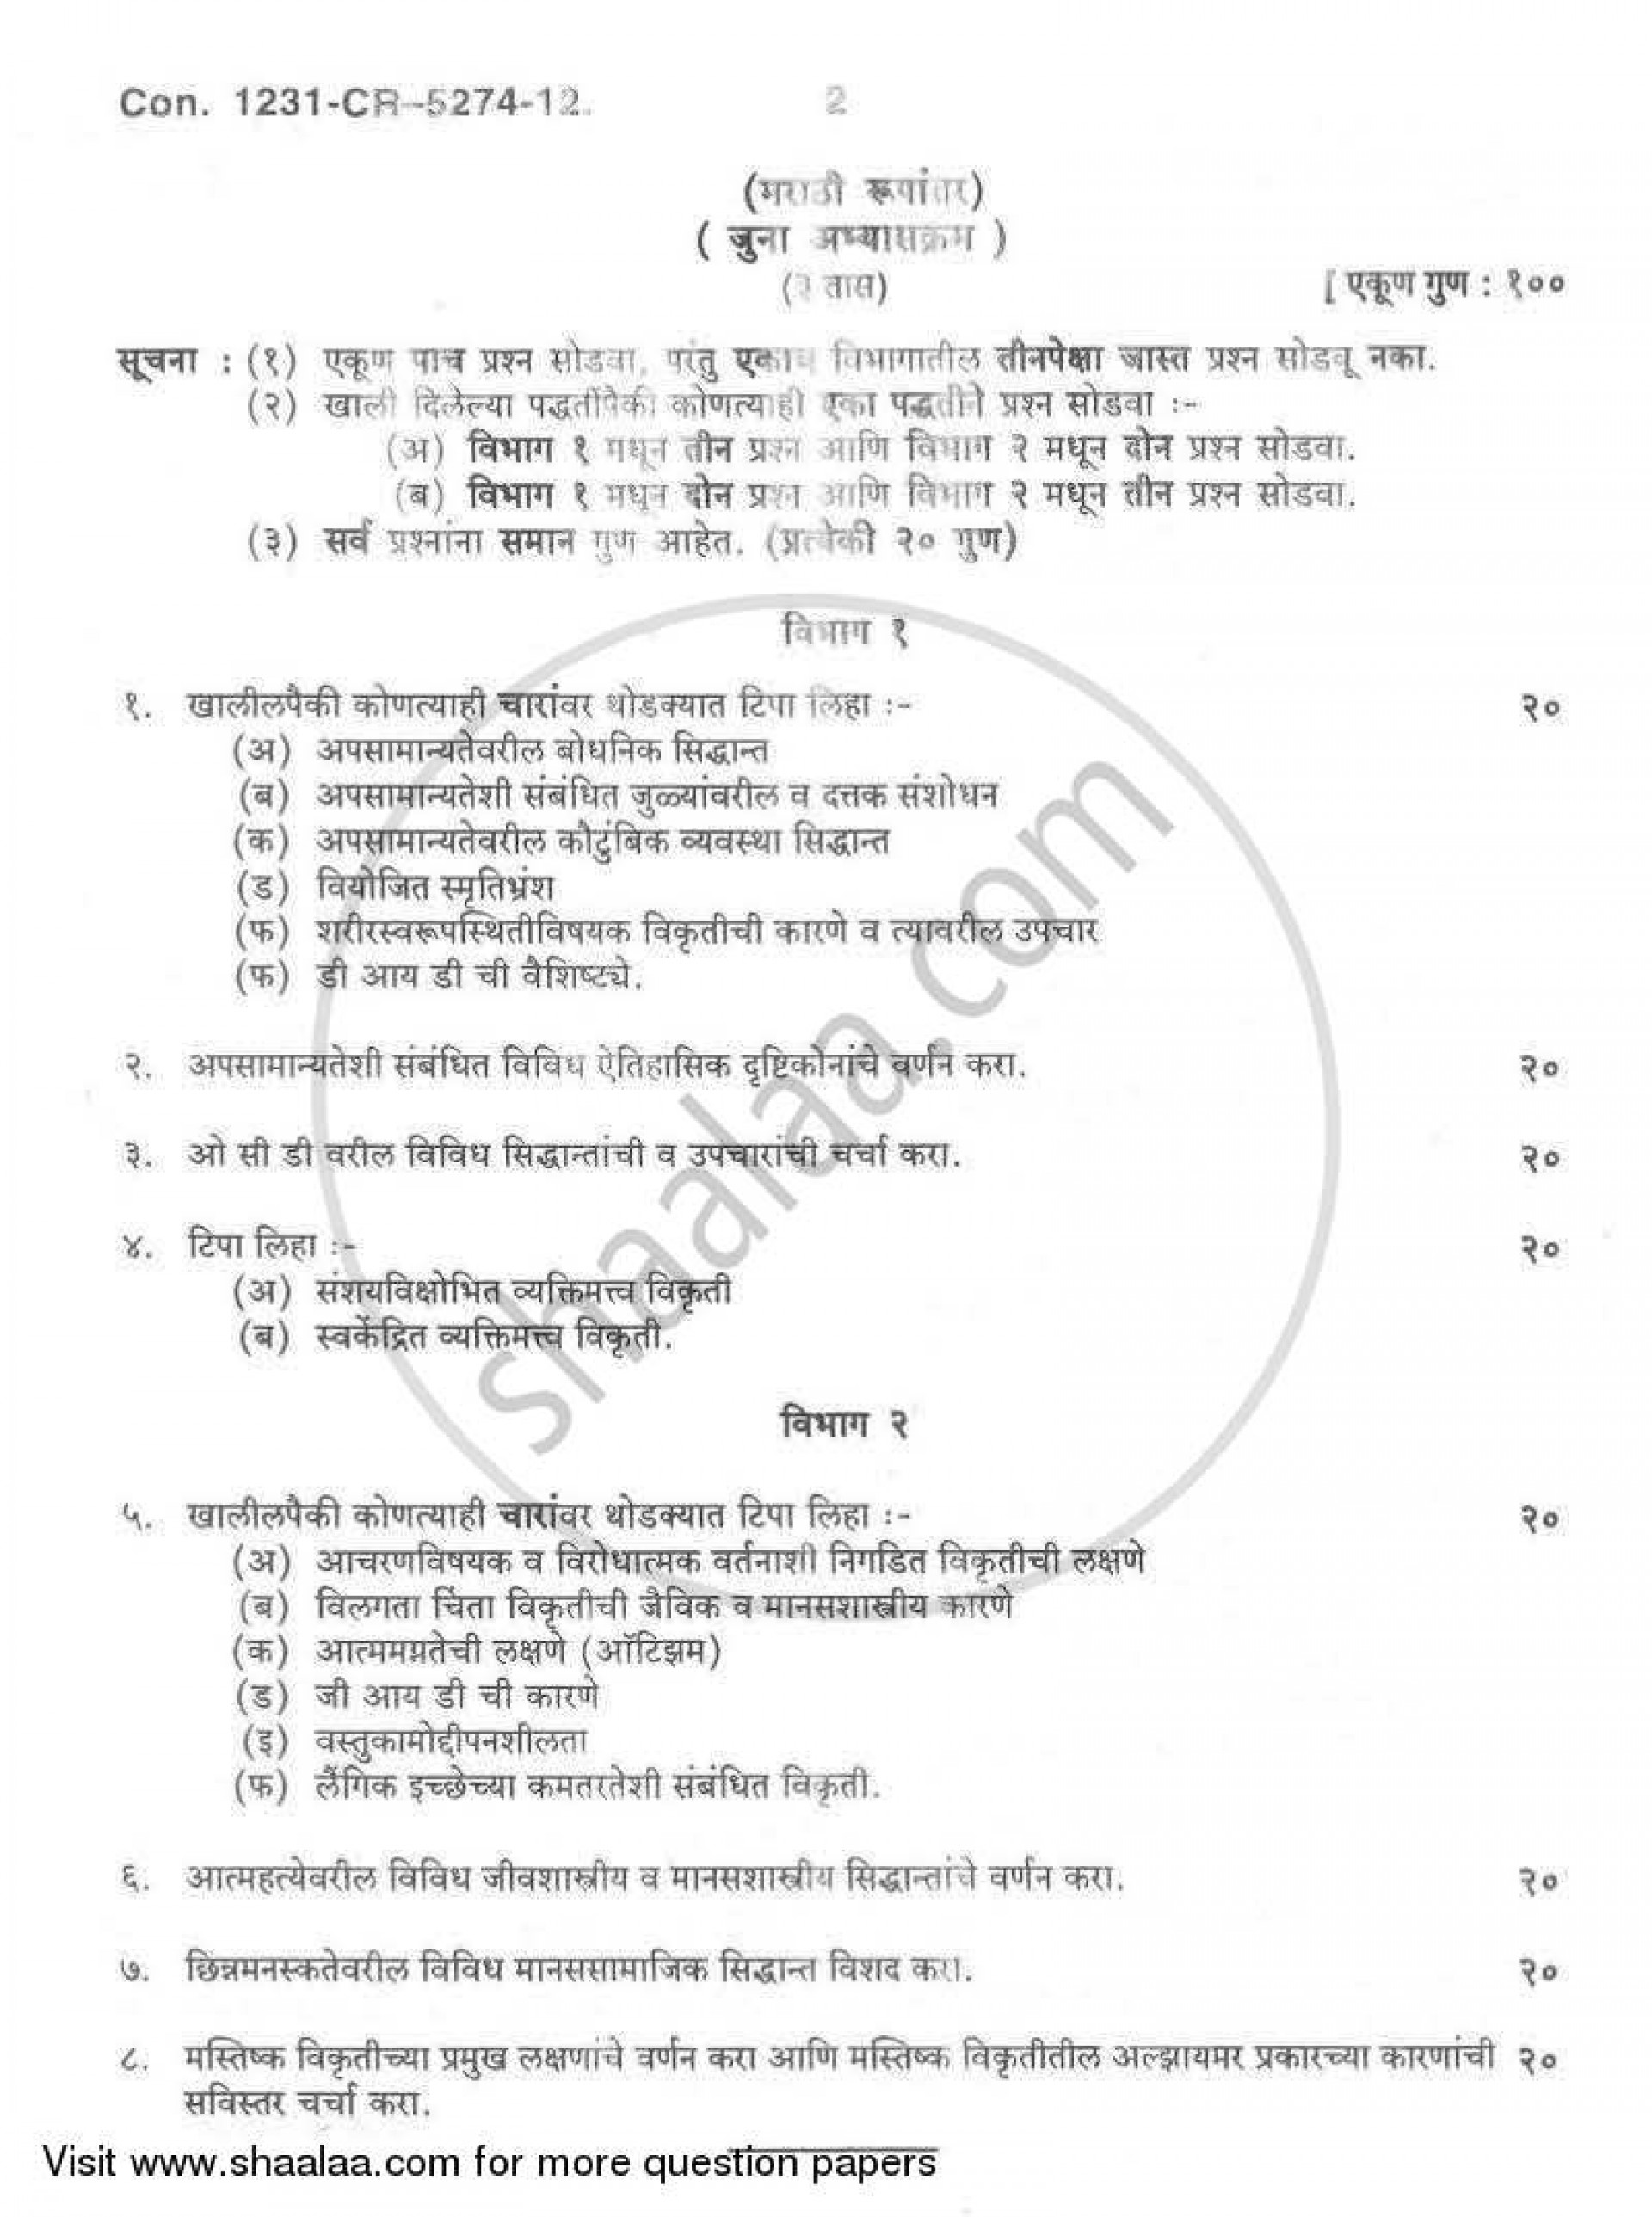 013 University Of Mumbai Bachelor Abnormal Psychology Ty Yearly Pattern Semester Tyba 2011 2f59827d7879f465fa7b425ed7c62431e Topics For Researcher Unique Research Paper 1920